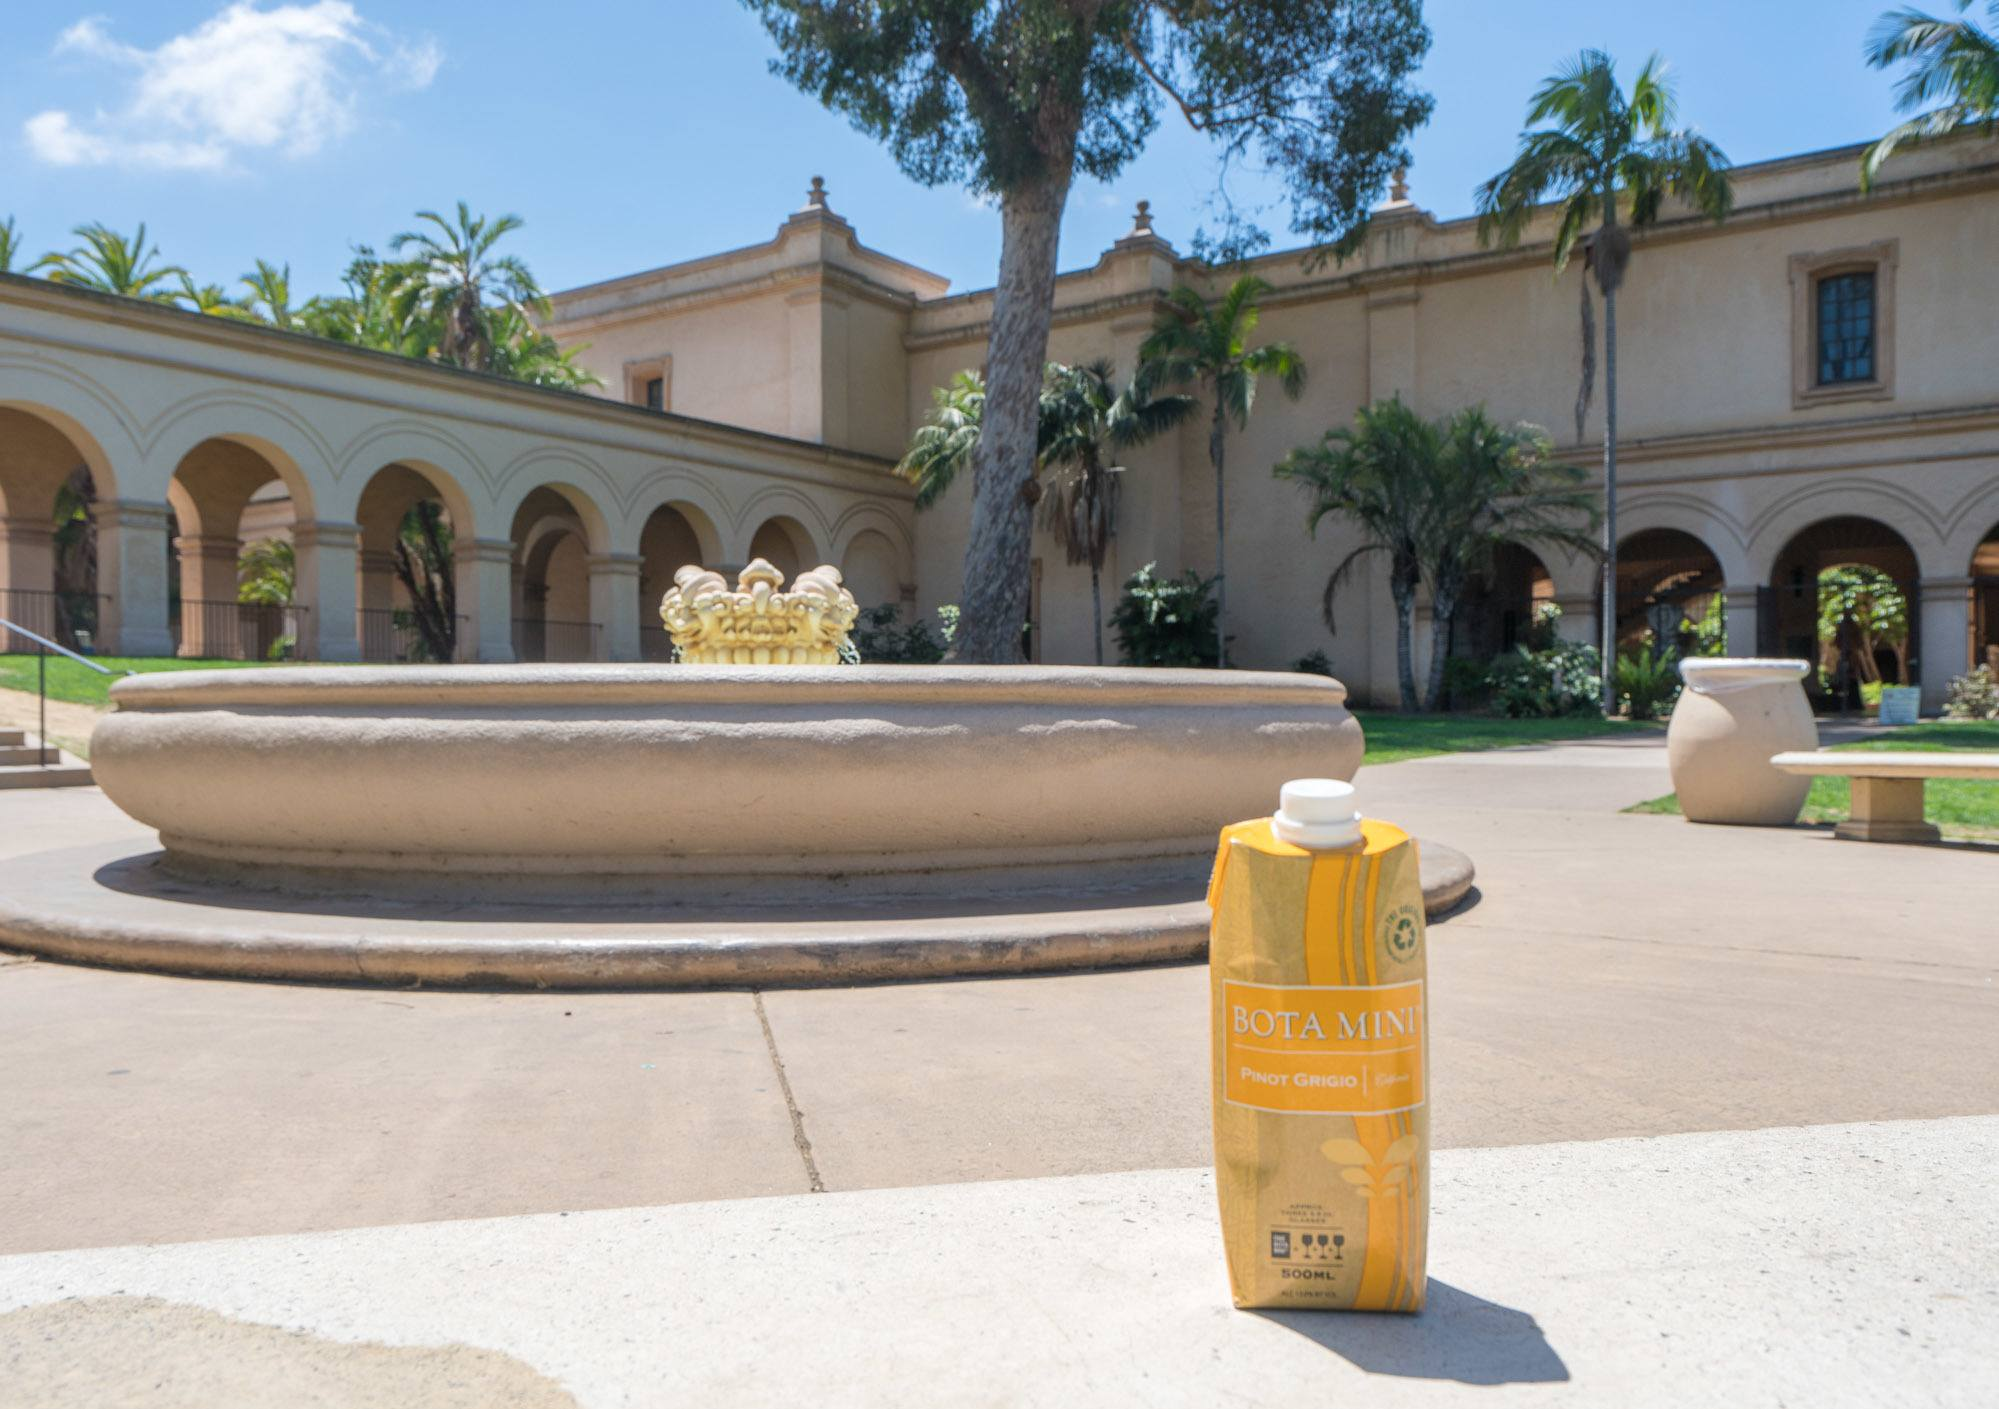 Bota Box Mini wine at Balboa Park in San Diego